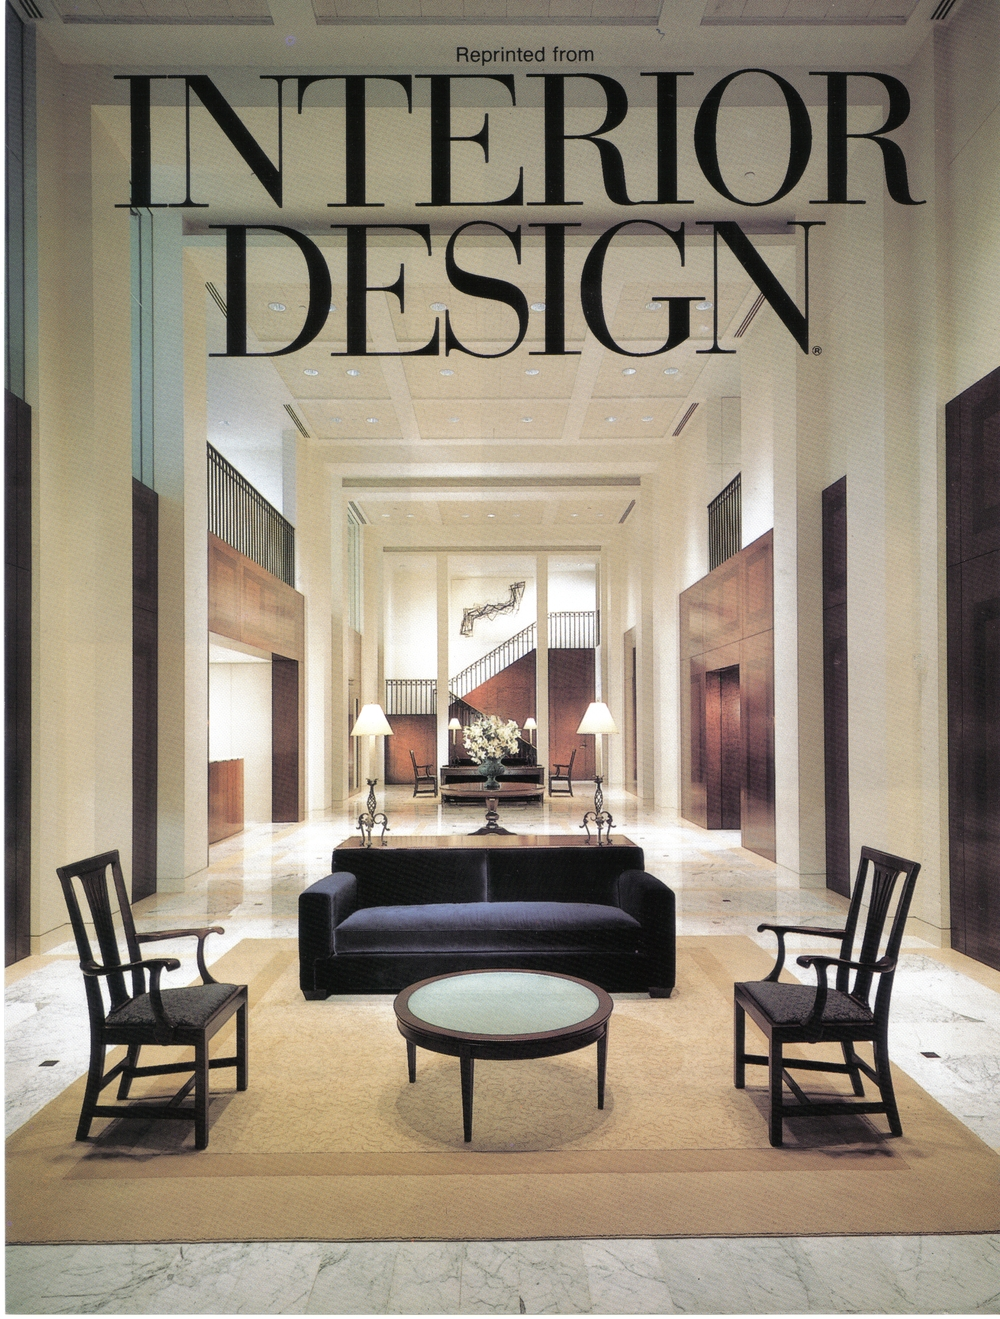 Corporate Art Installation: Price Waterhouse International Headquarters, The Americas Tower. Interior Design Magazine cover, 1994.